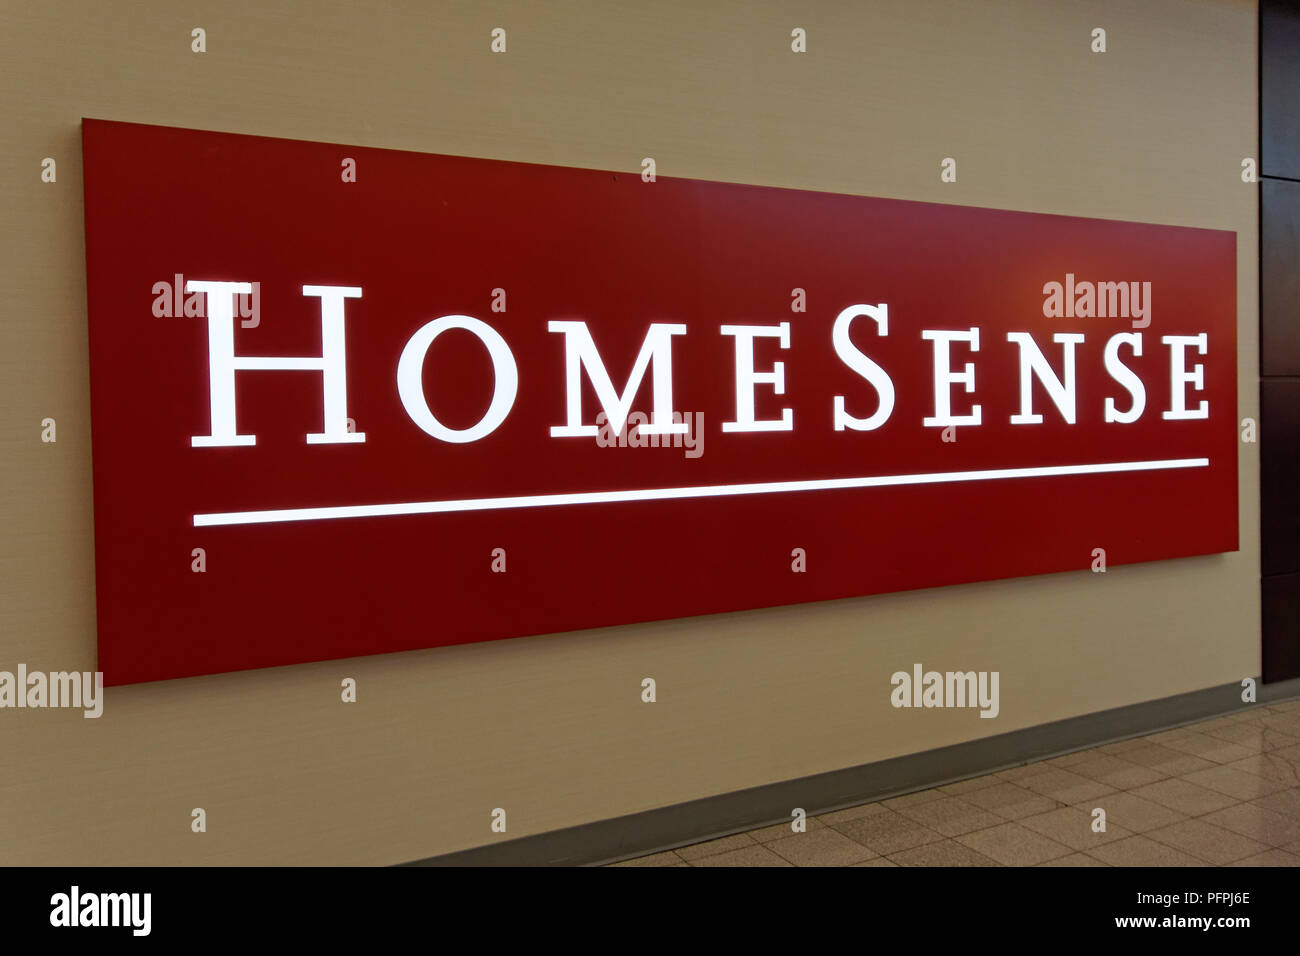 HomeSense home decor store sign in Lansdowne Centre shopping mall in Richmond, BC, Canada - Stock Image